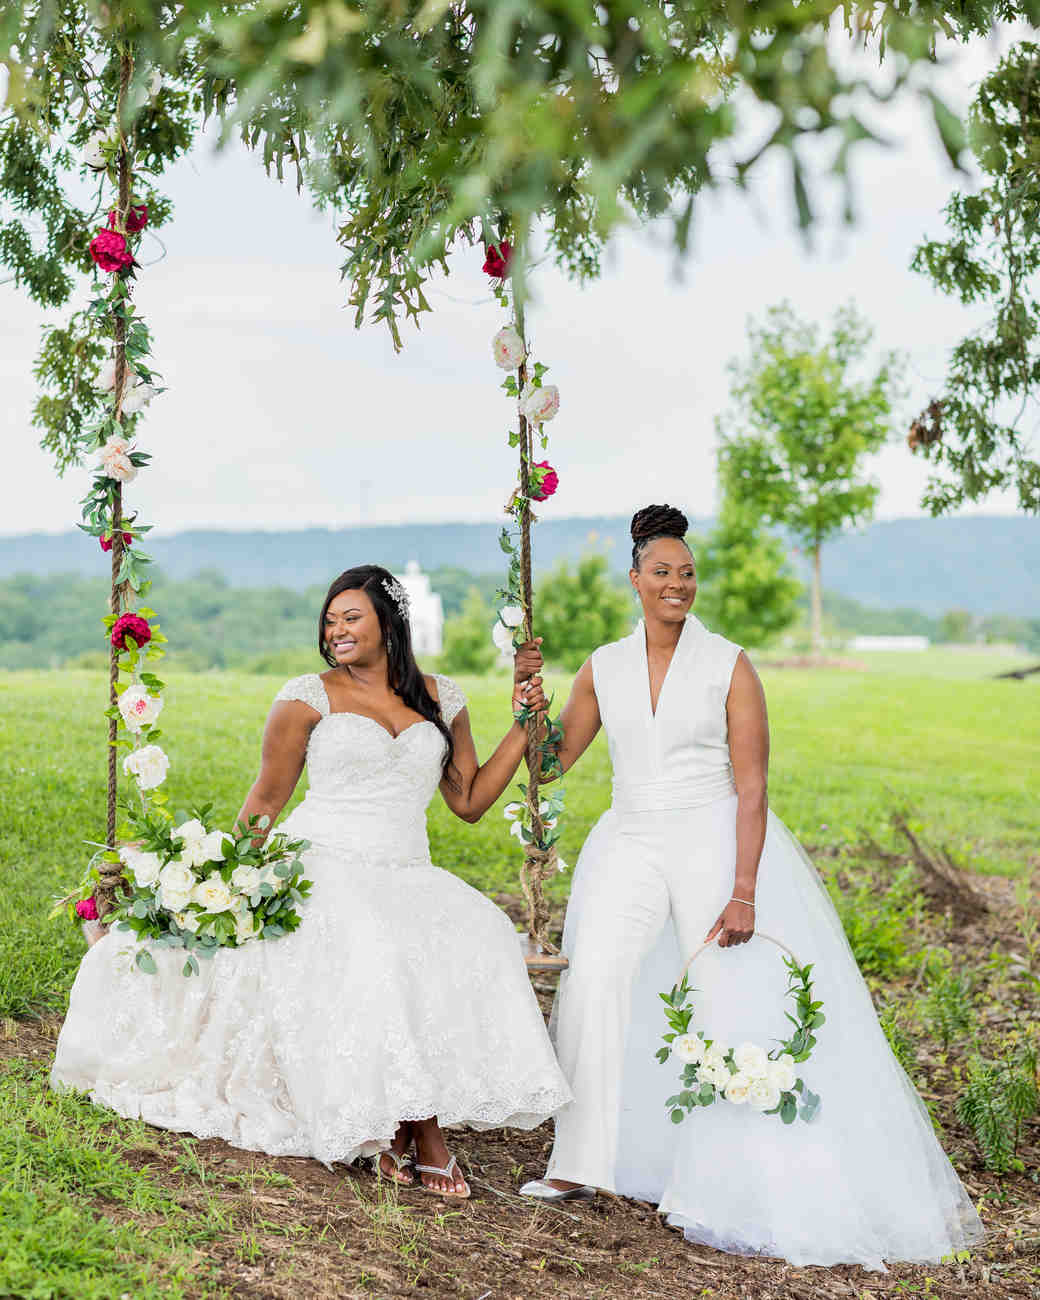 cara chamique wedding brides on swing